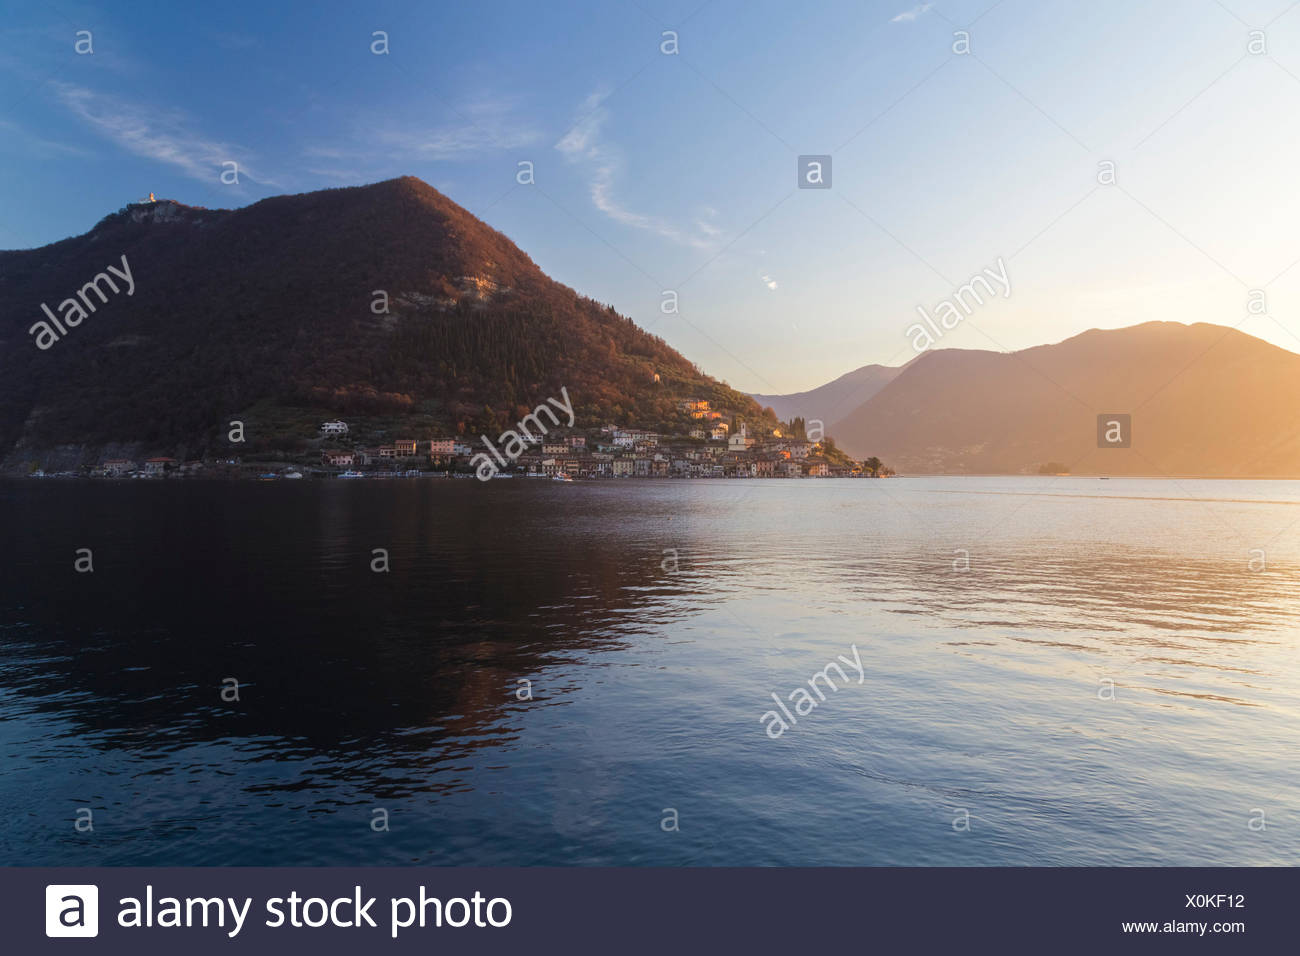 Monte Isola reflection on Lake Iseo during a winter sunset, Brescia Province, Iseo Lake, Lombardy, Italy. - Stock Image